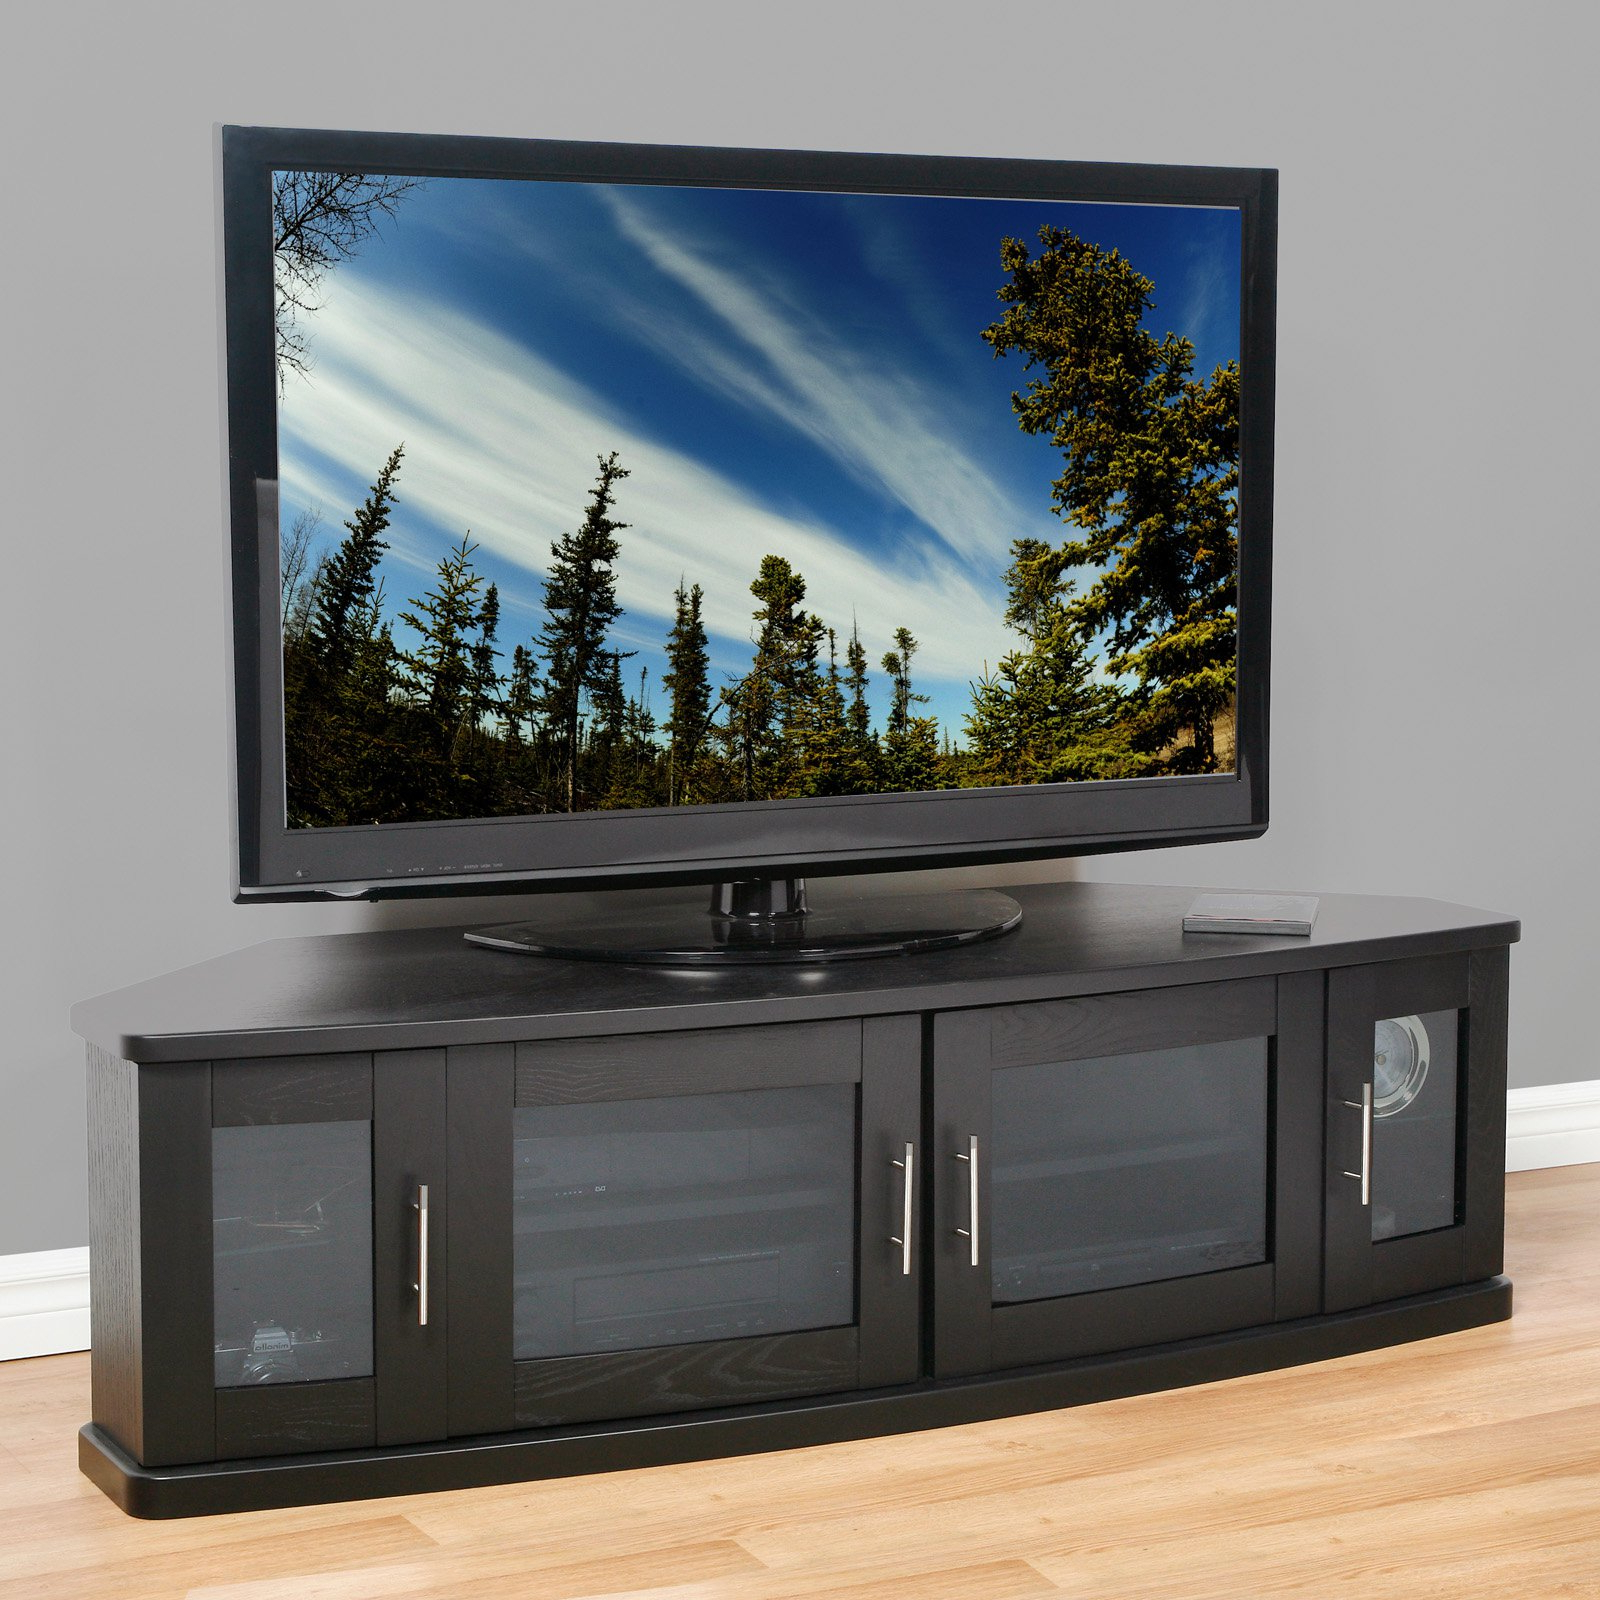 Most Current Plateau Newport 62 Inch Corner Tv Stand In Black – Walmart Inside Corner Tv Stands (View 15 of 20)